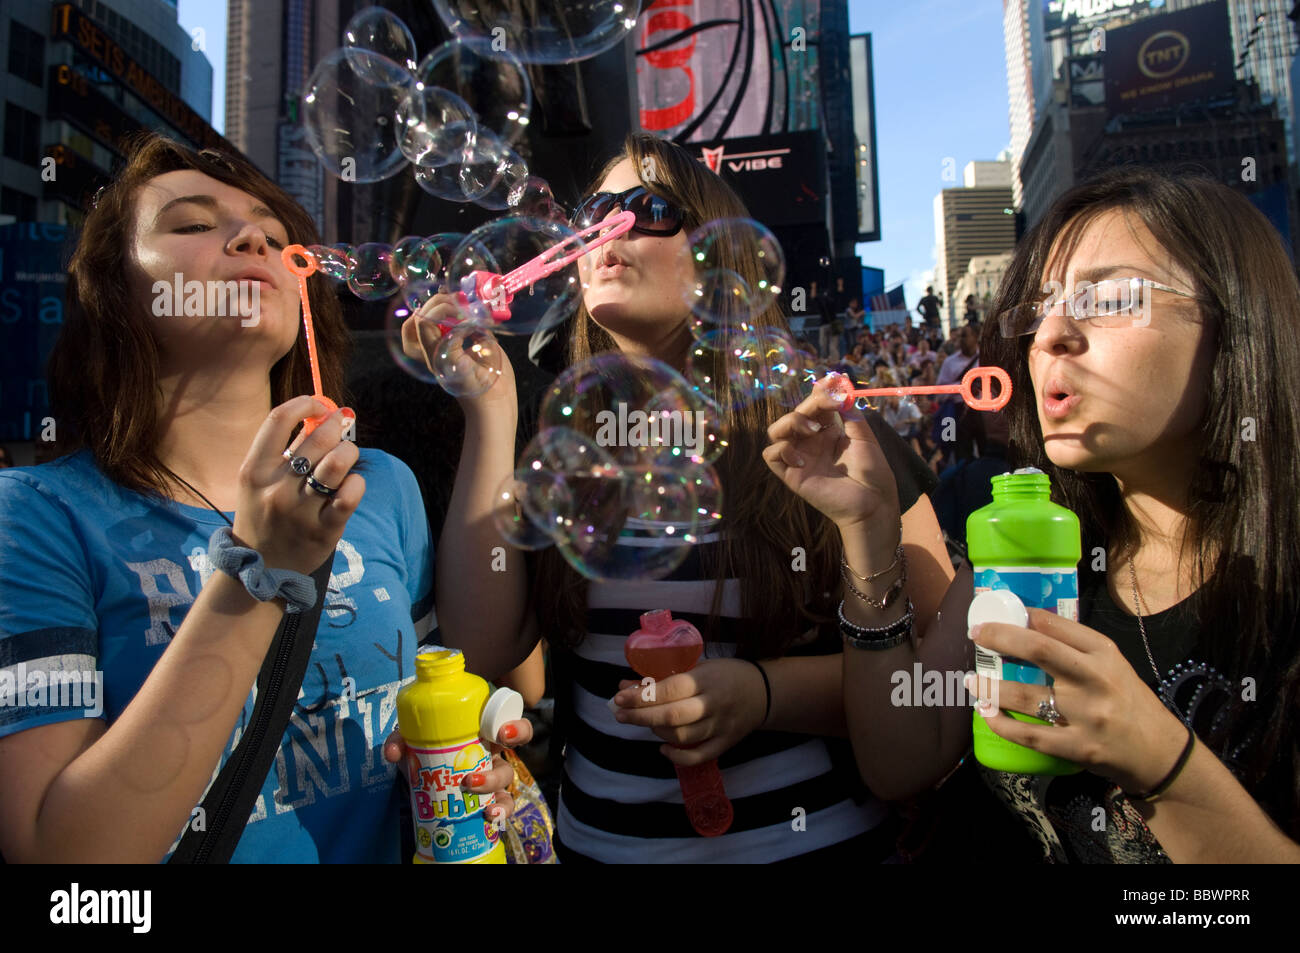 Hundreds of people gather in Times Square in New York to launch millions of bubbles - Stock Image